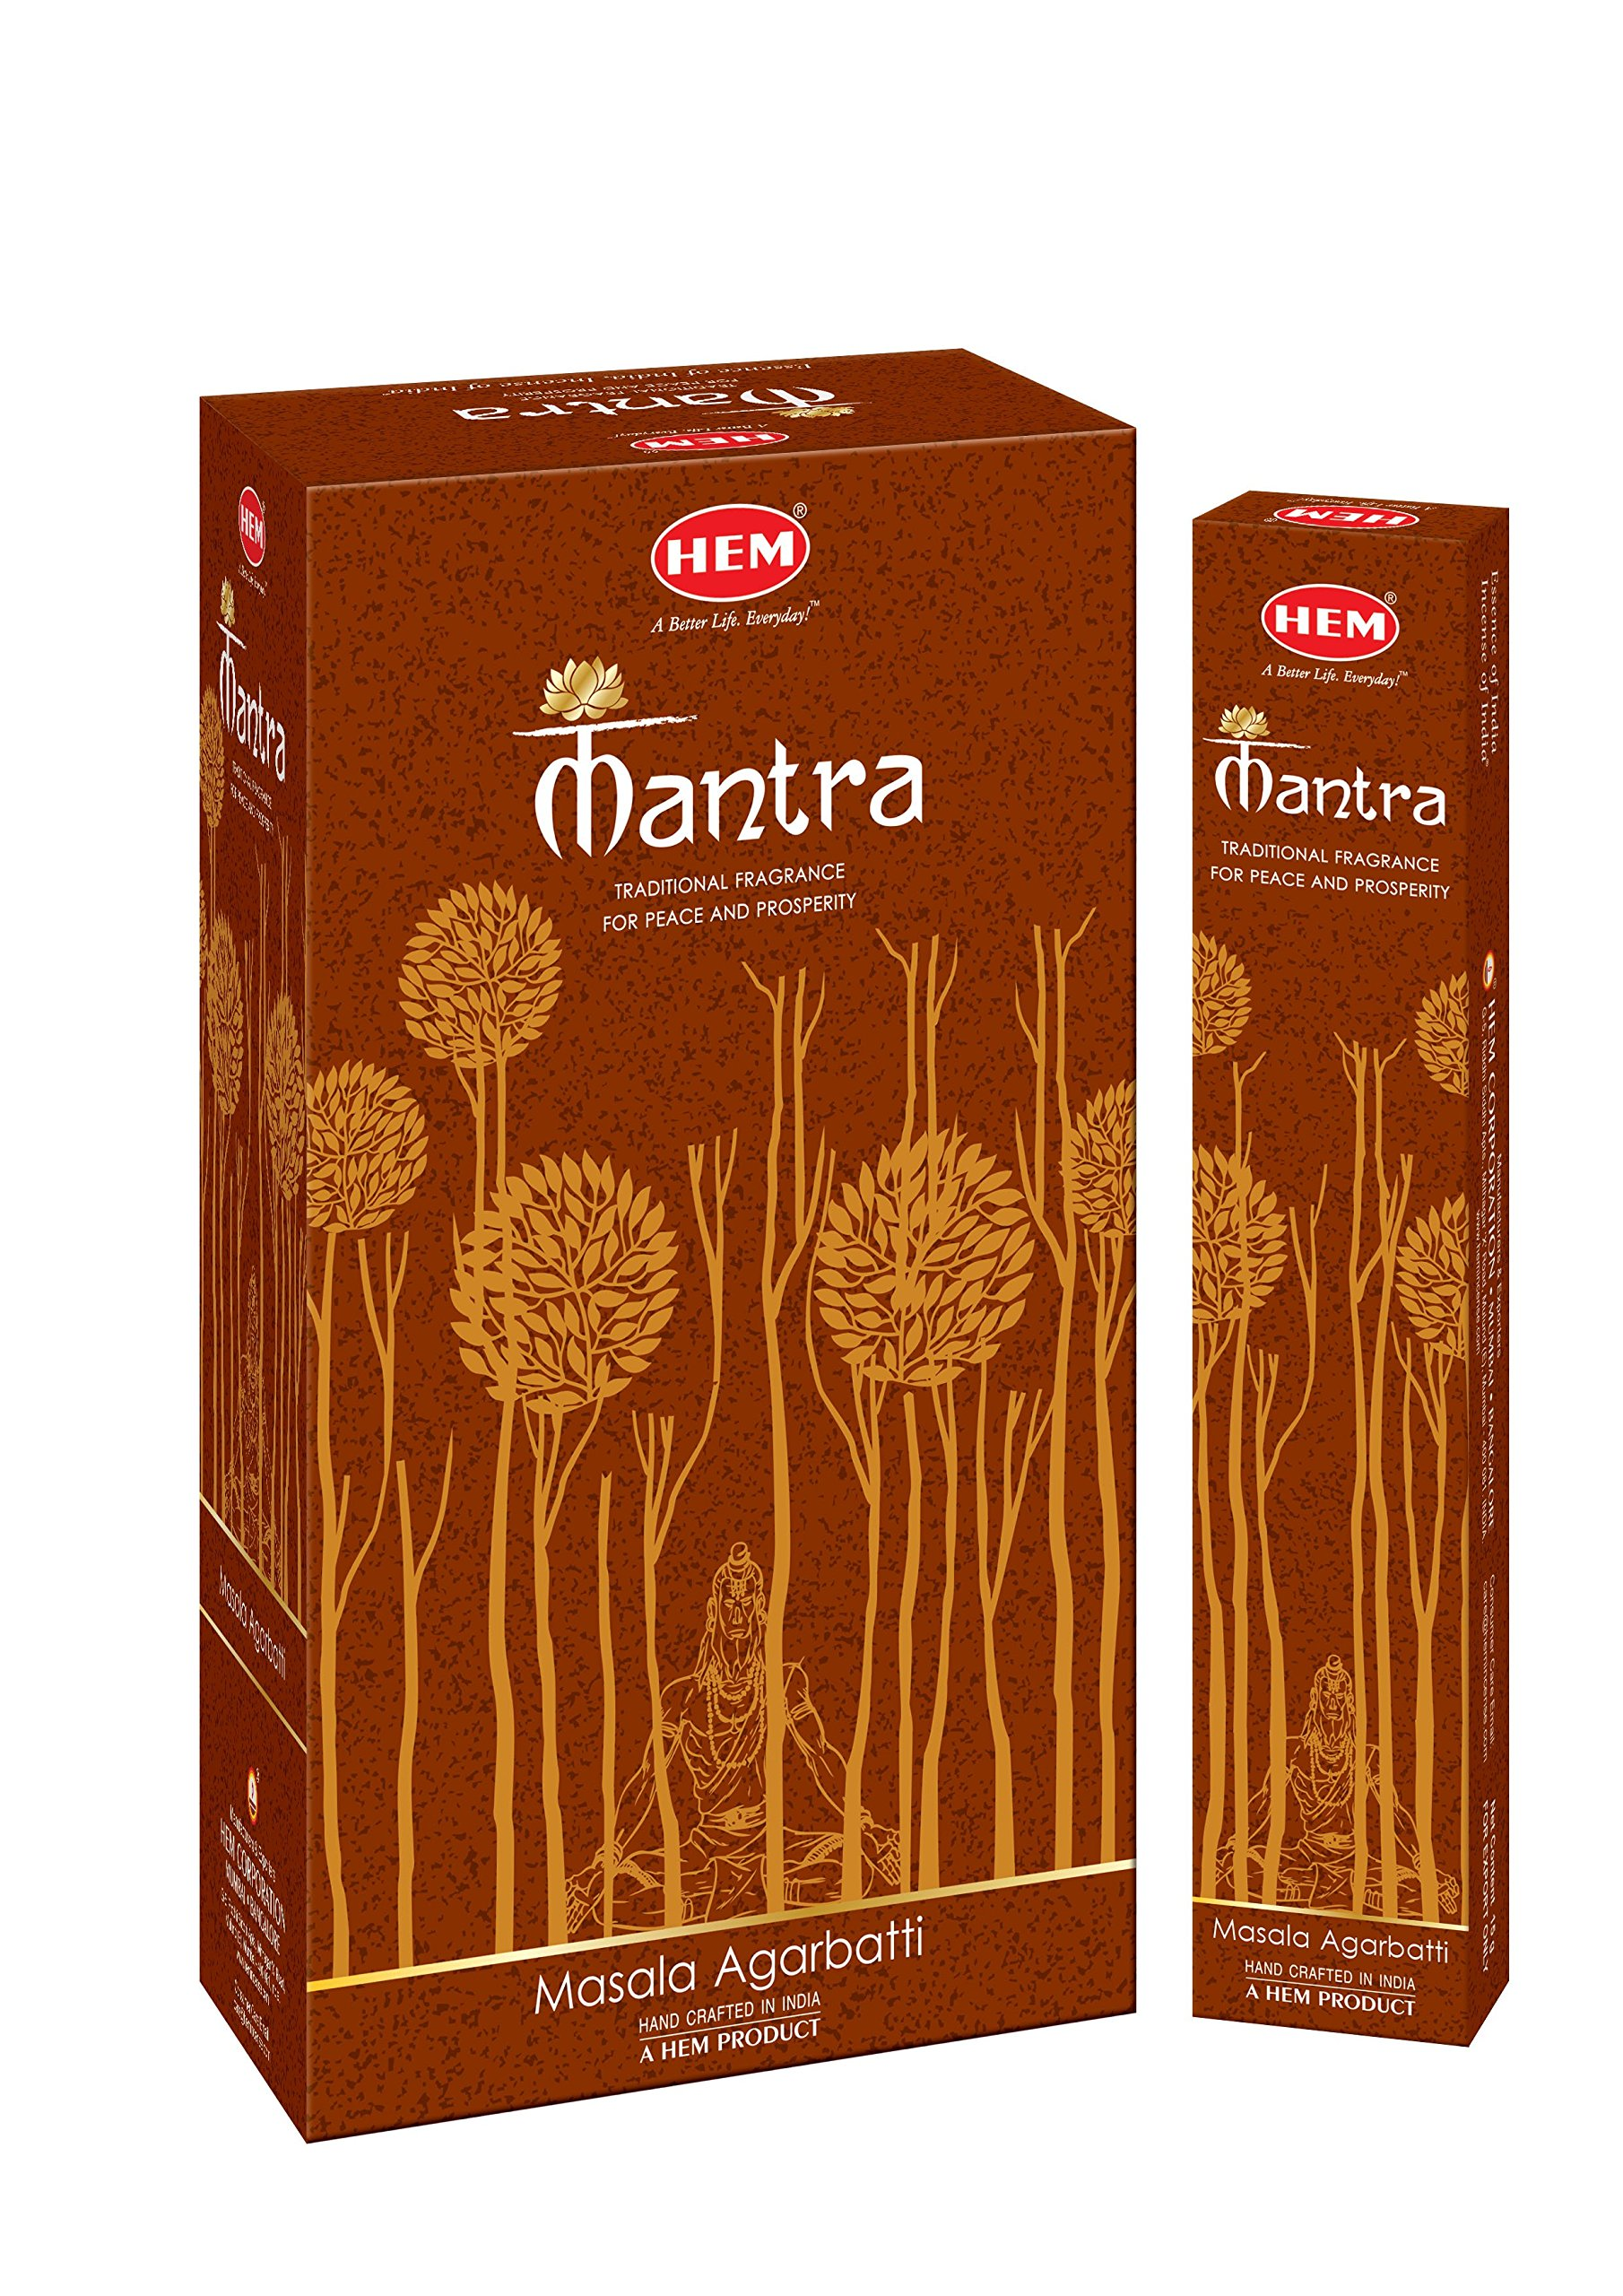 Hem Incense Newly launched Exclusive Fragrance Mantra Masala Agarbatti Sticks (Set of 12 Boxes, 15 Grams Each) by Hem